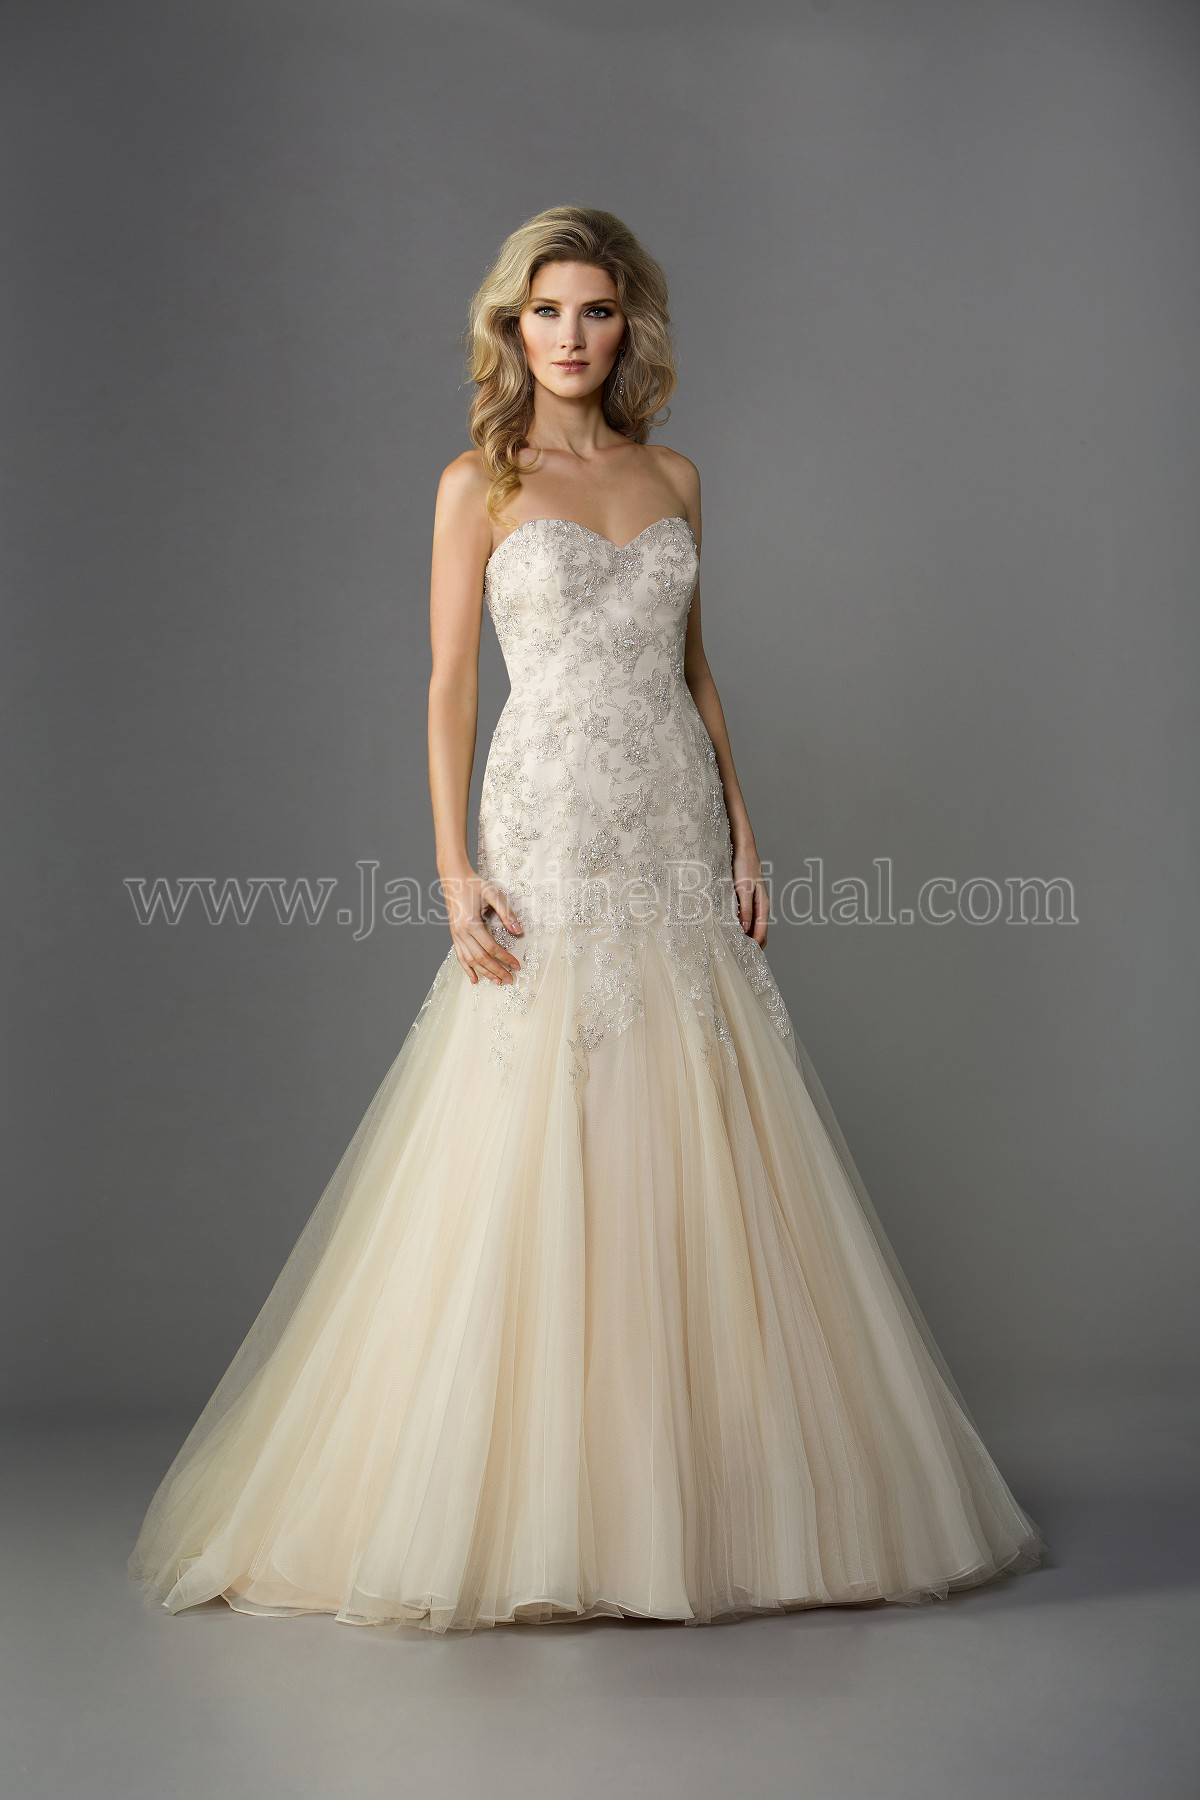 F161057 Sweetheart Strapless Lace & Netting Wedding Dress with Beading